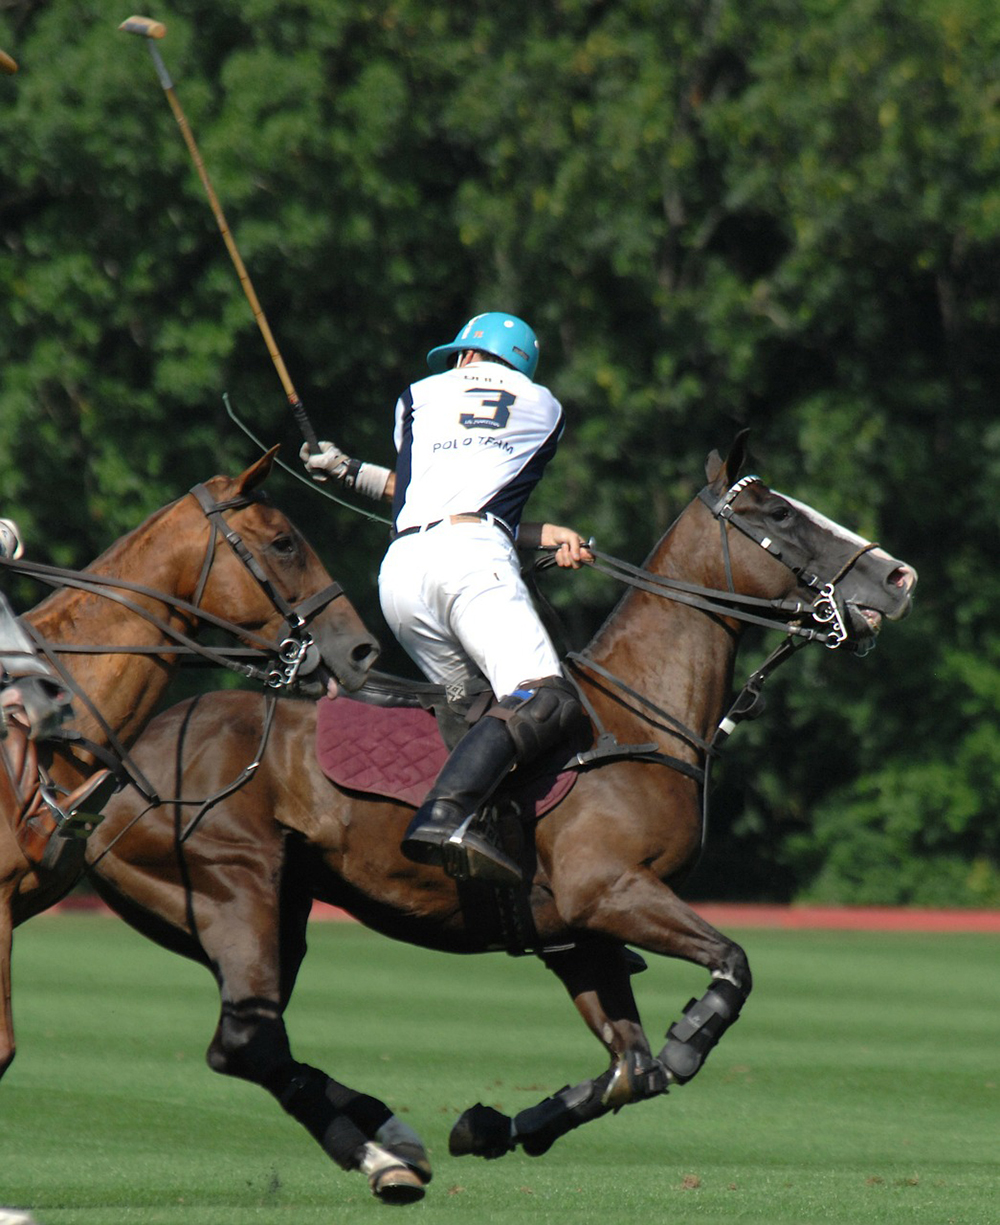 Polo in Action-Cliff Notes.jpg